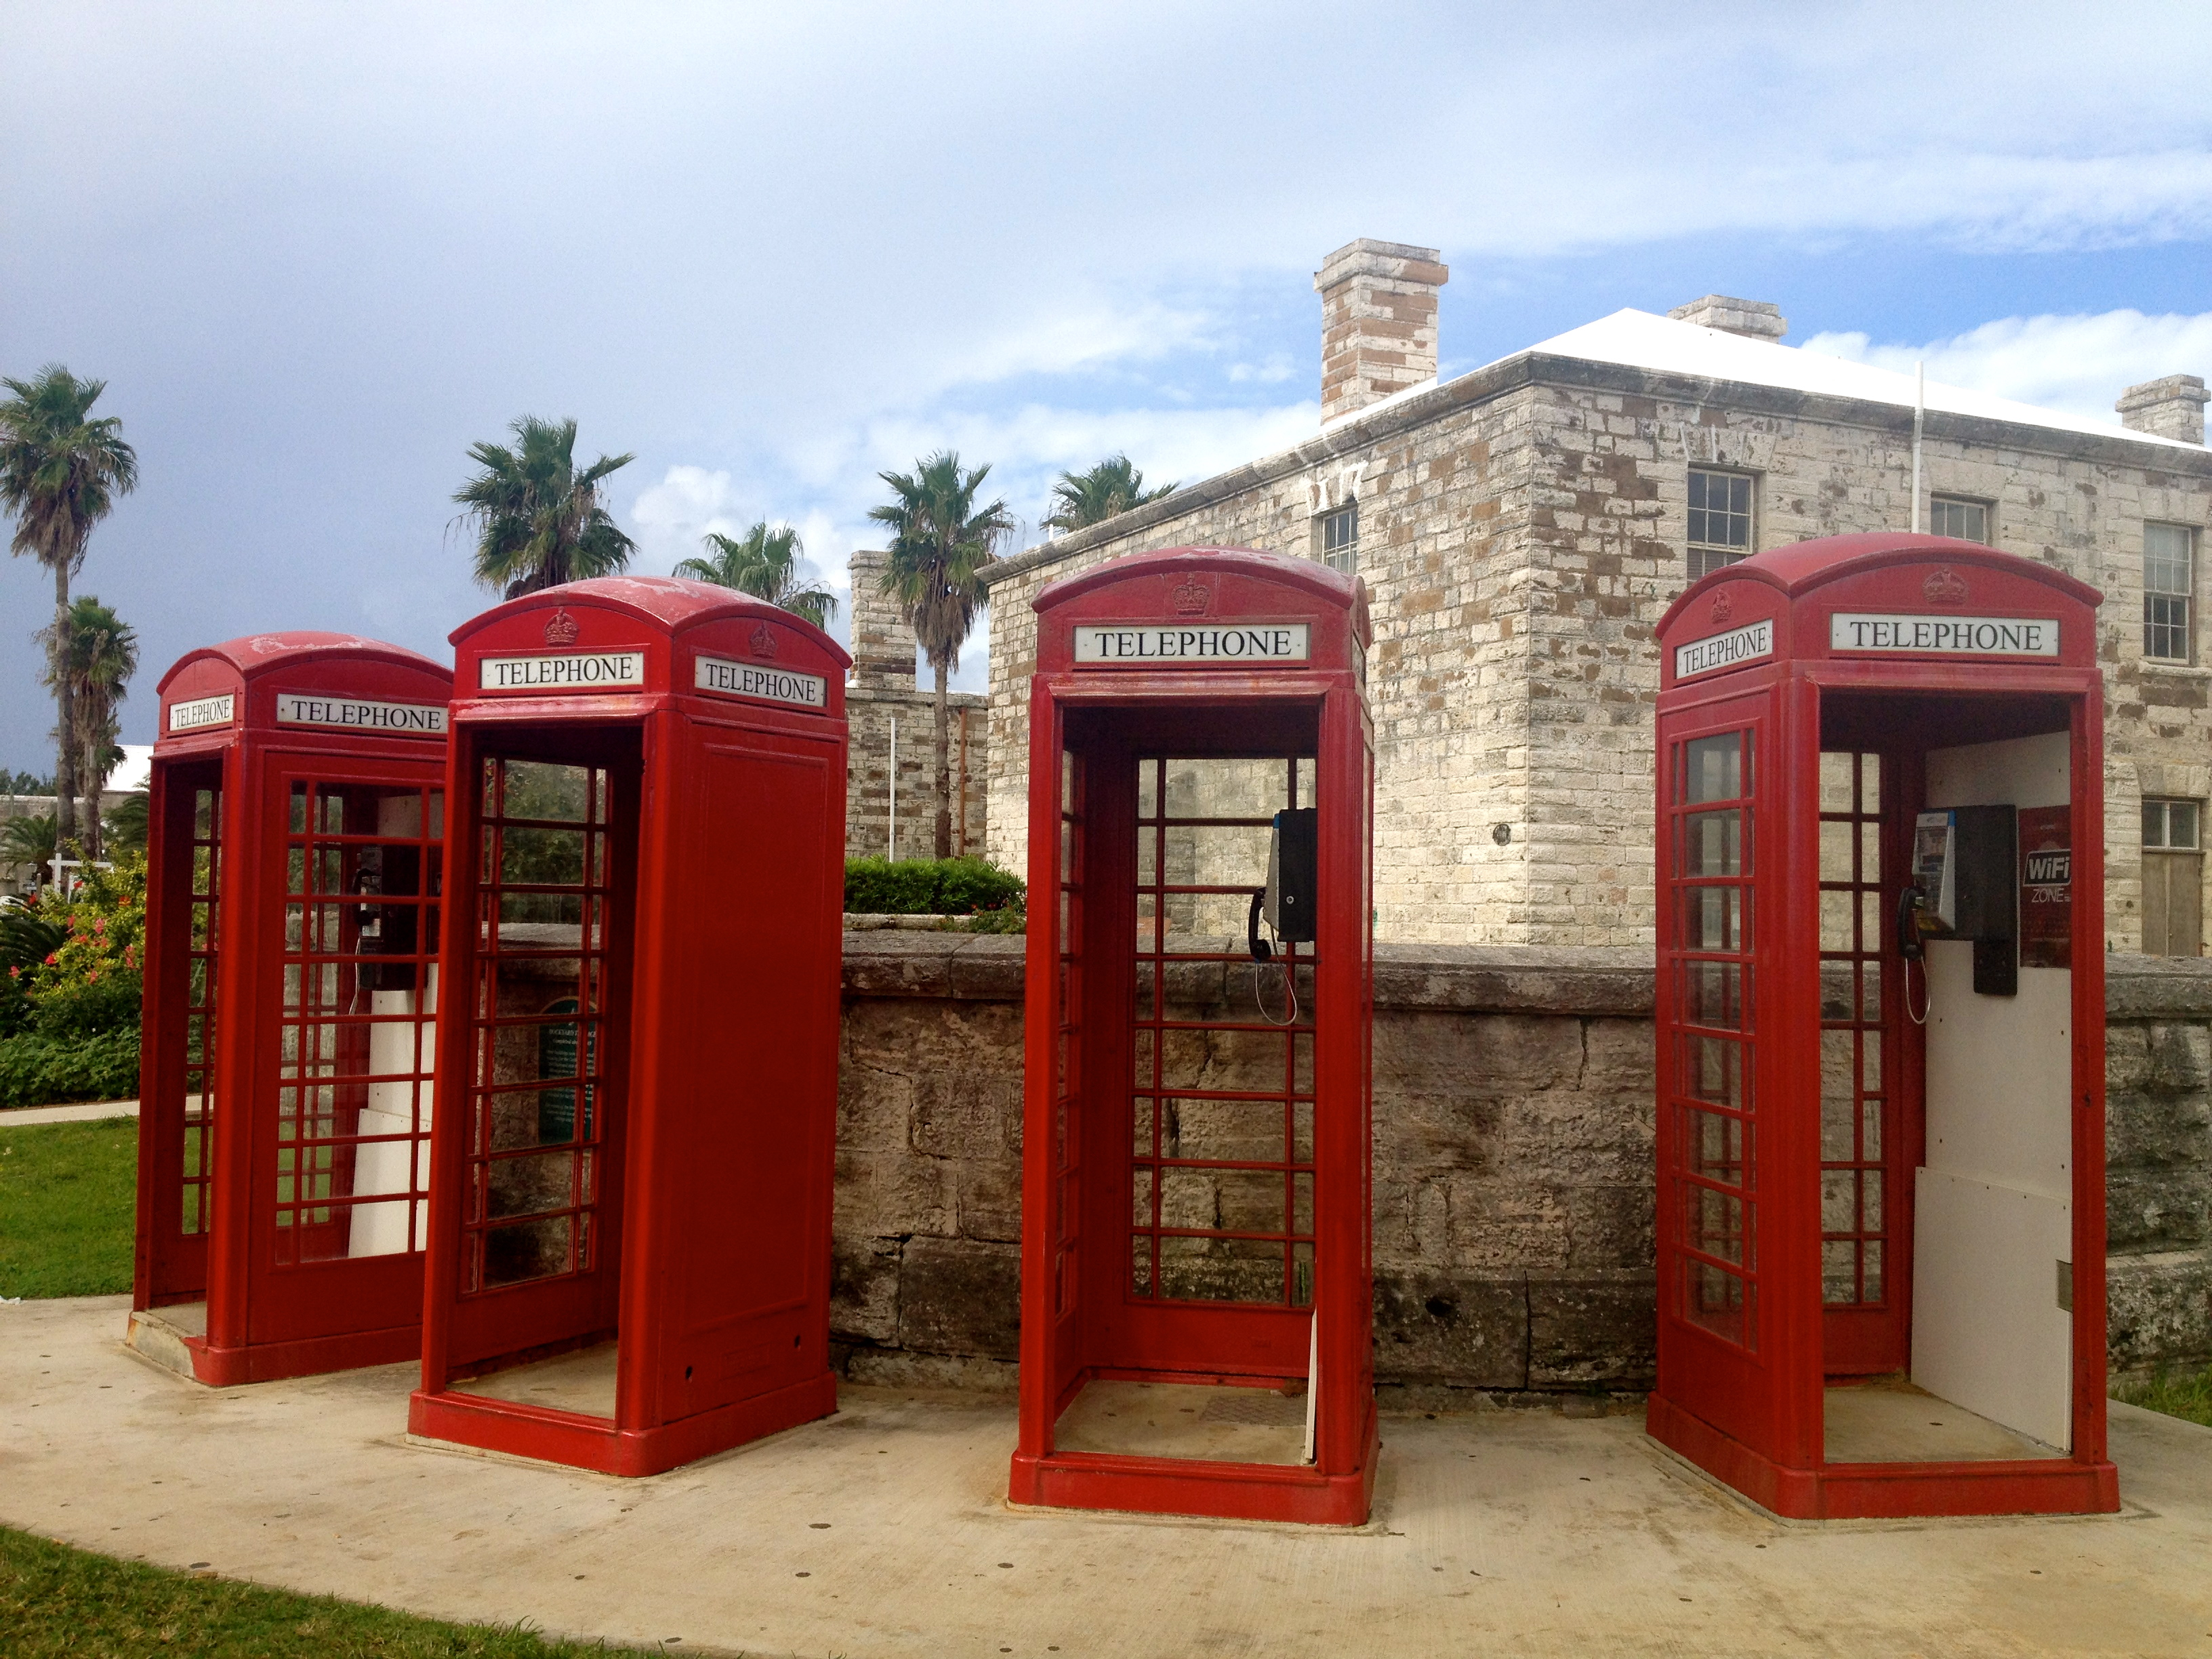 Telephone boxes in Royal Naval Dockyard